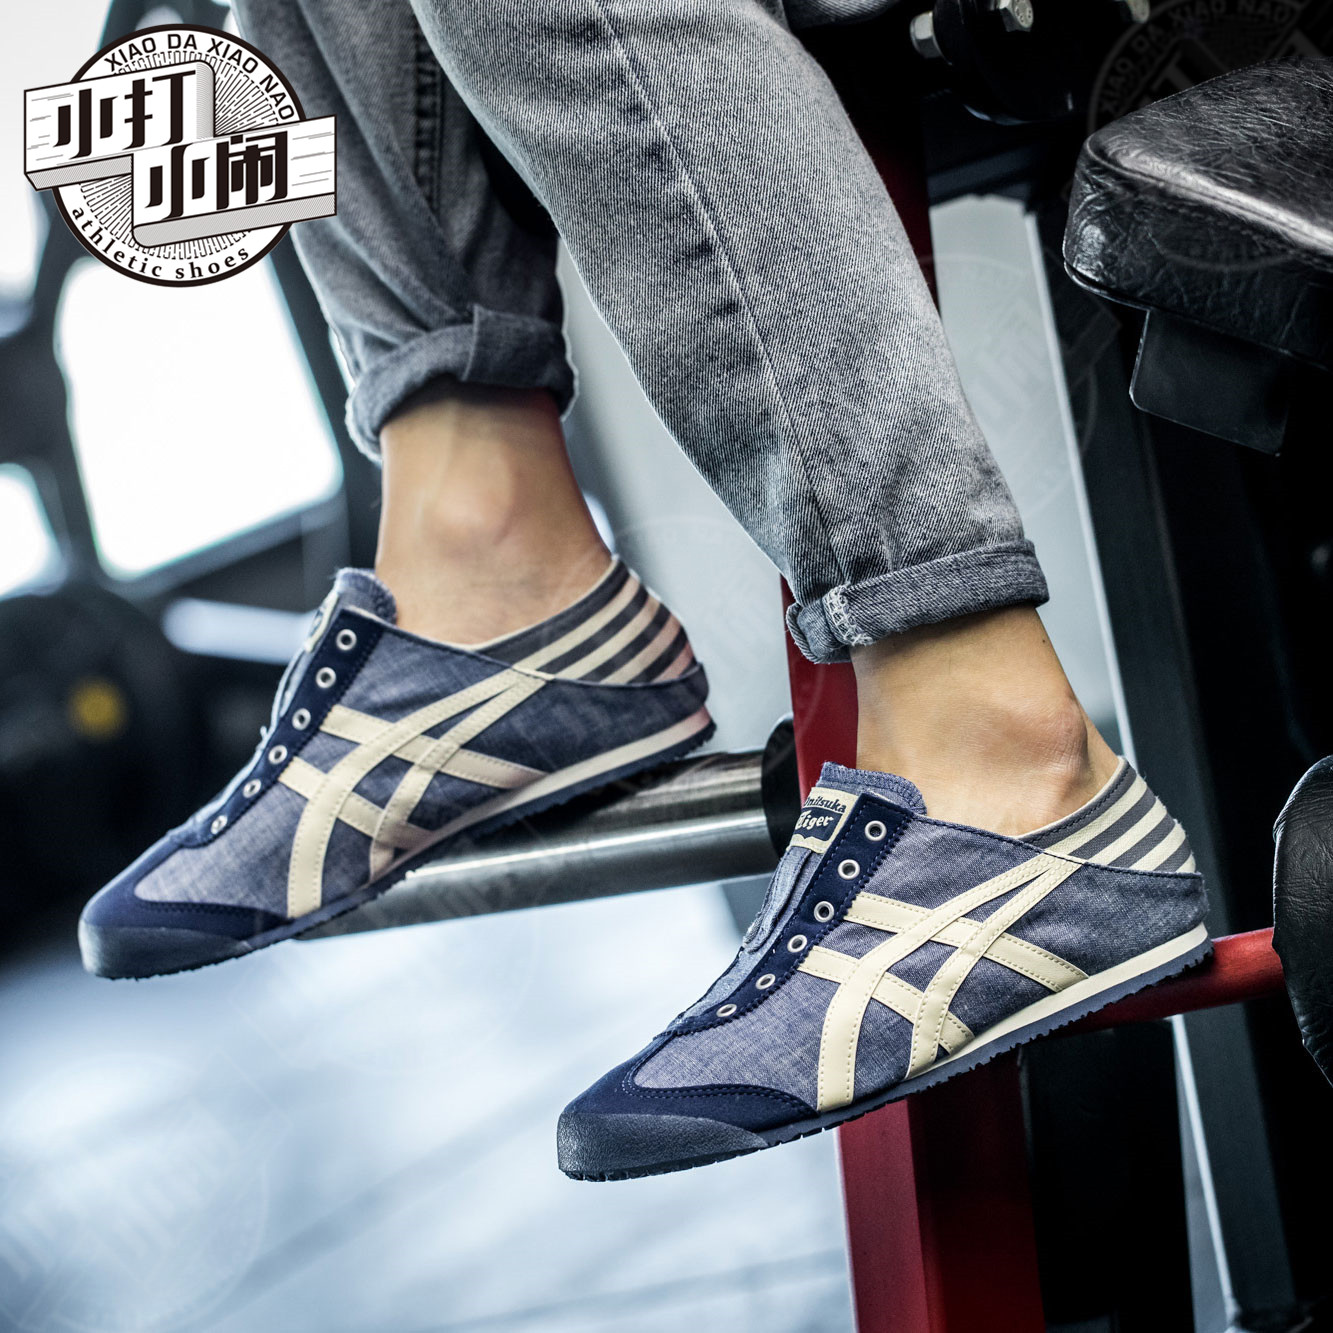 100% authentic d1a1e f4da0 Onitsuka Tiger men and women casual shoes couple Onitsuka tiger lazy shoes  a pedal TH342N-4202